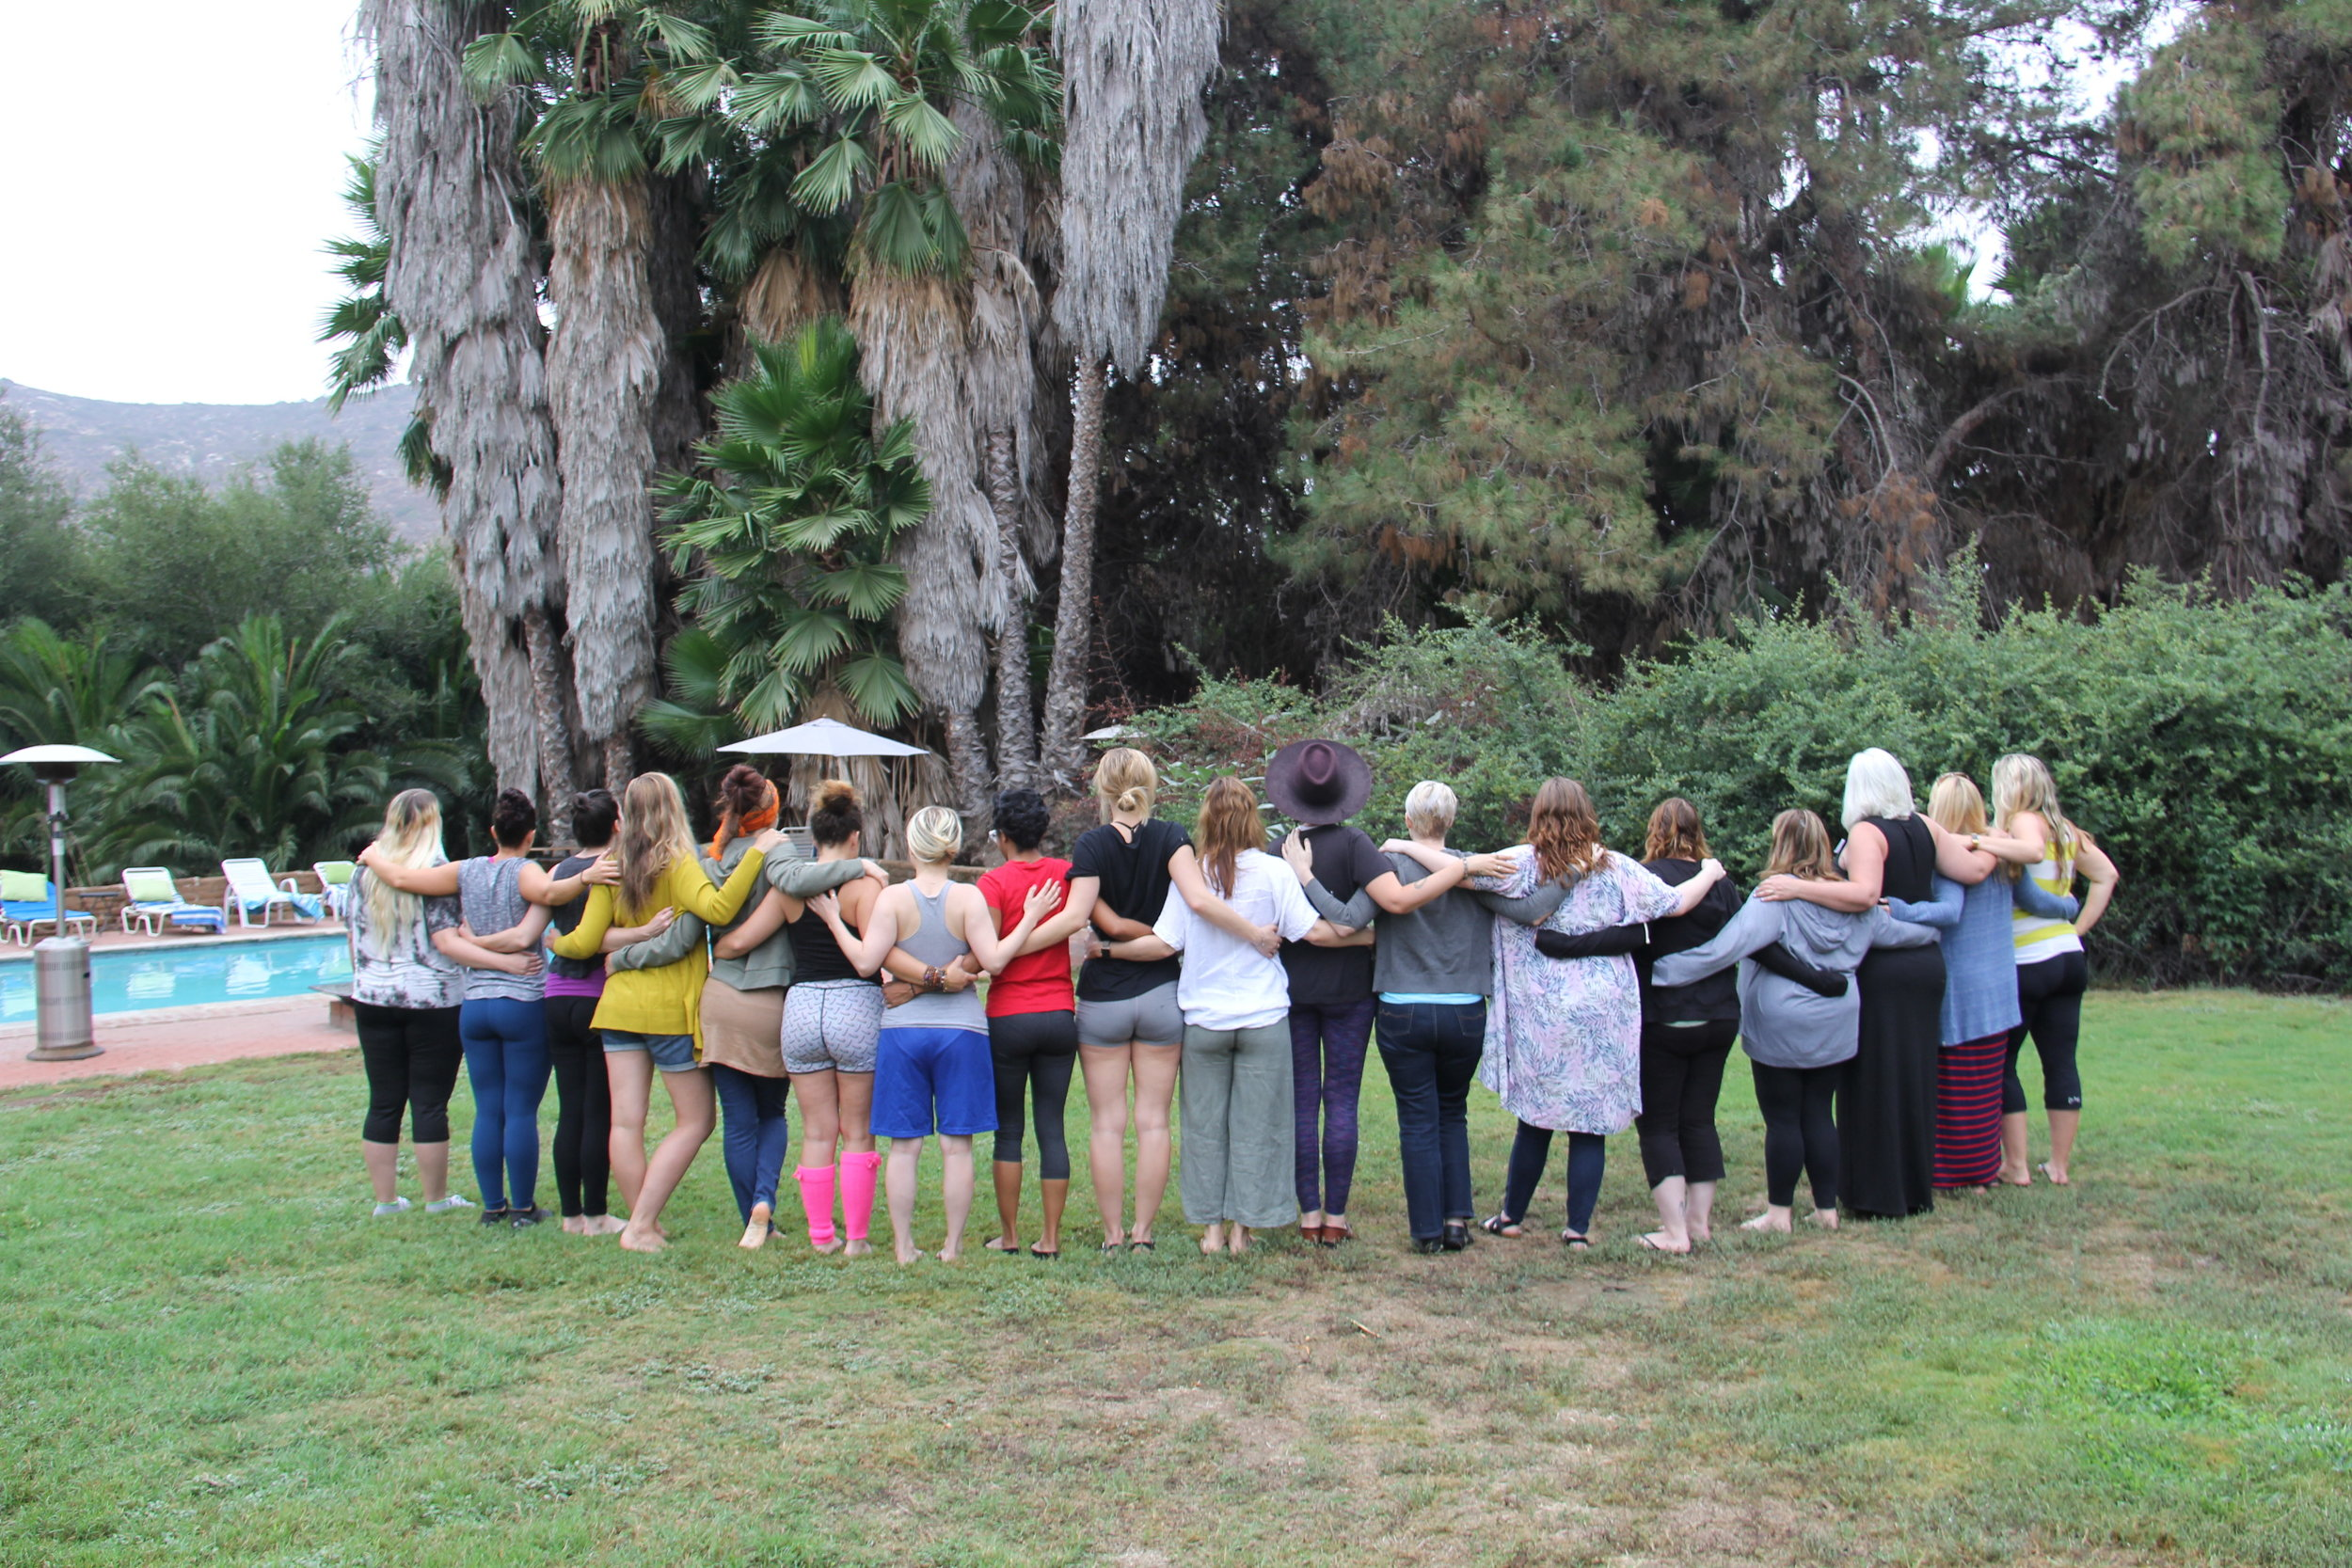 Attendees at the 2018 Sunlight Retreats for rape survivors, held in an undisclosed location in San Diego, received help and support during a weekend of healing. Applications for the 2019 retreat open on March 15. Courtesy photo